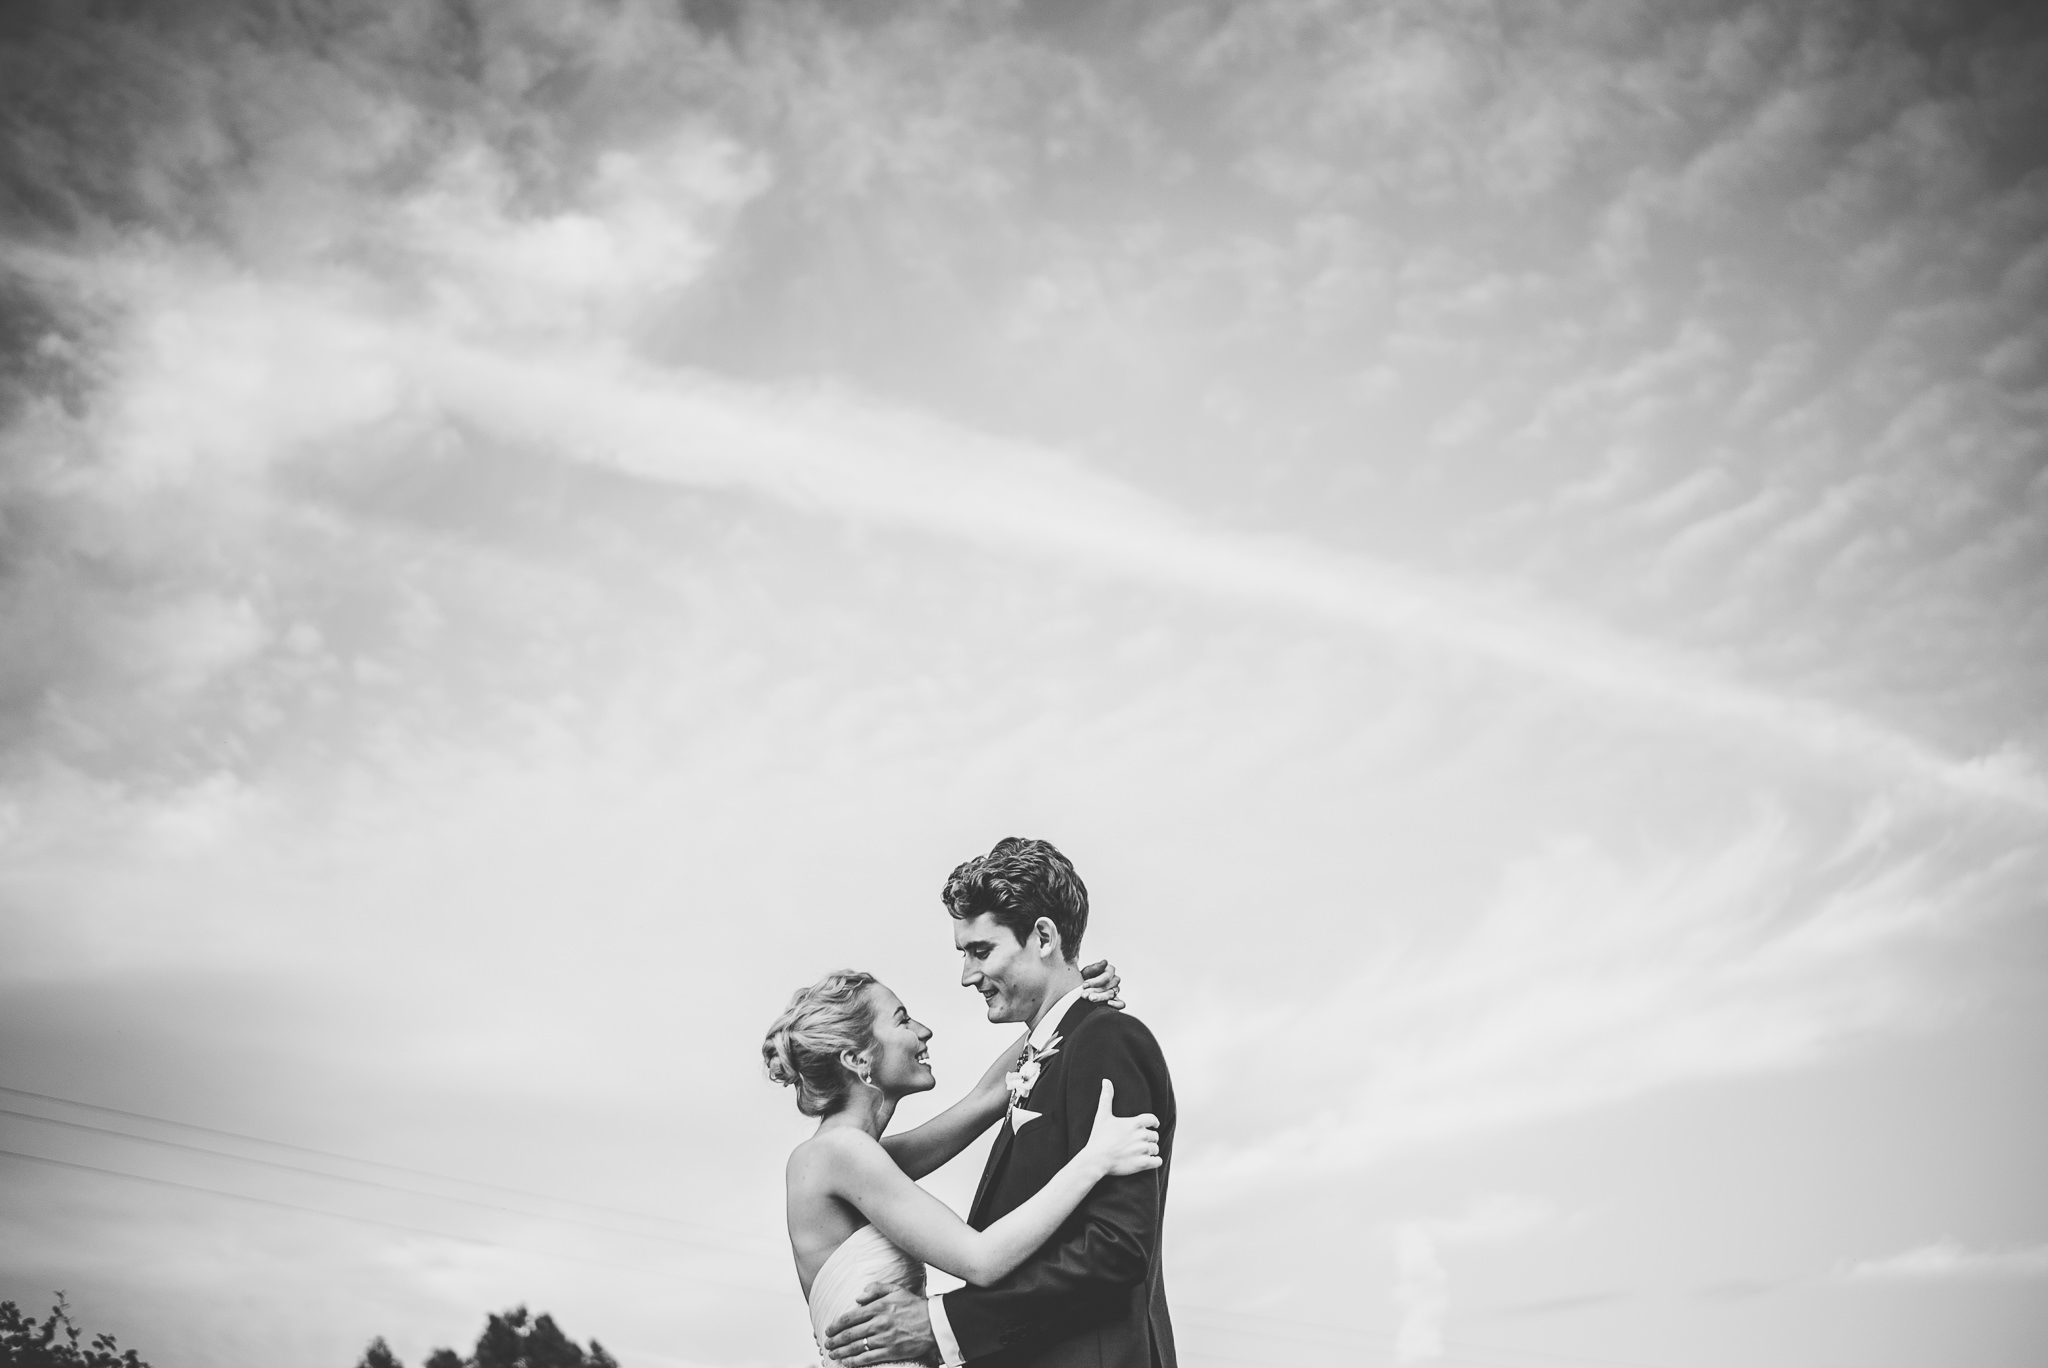 paul-marbrook-best-wedding-photographer-north-wales-084013